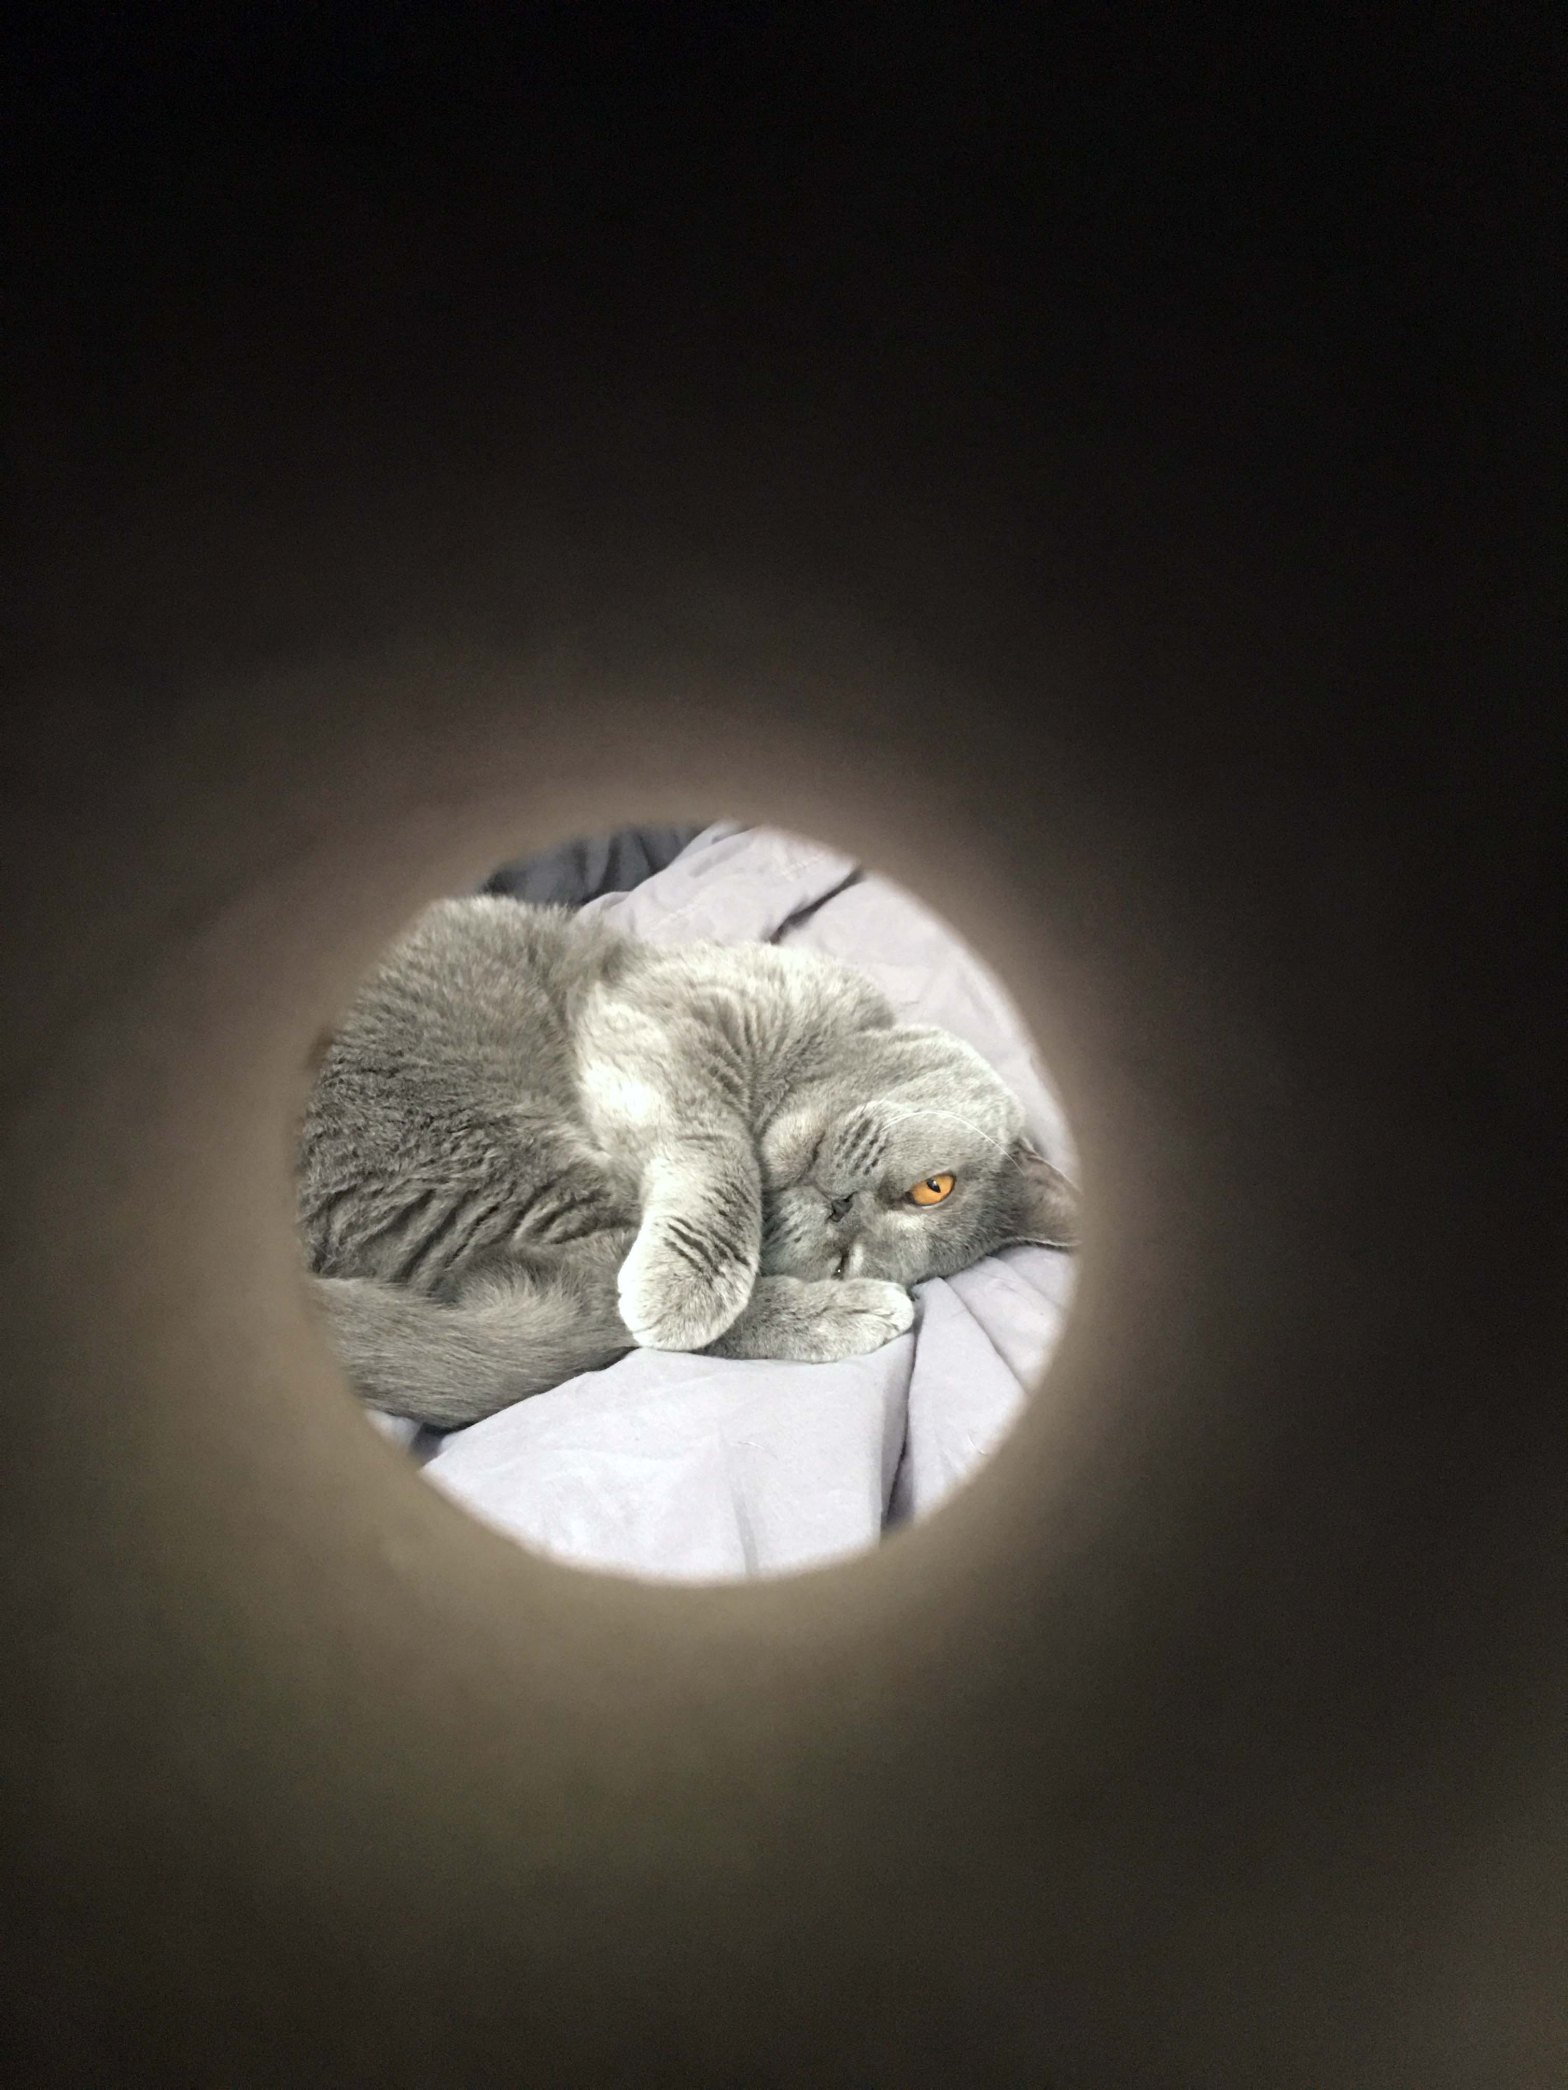 Photograph of BlueBlue the cat taken through a toilet roll tube